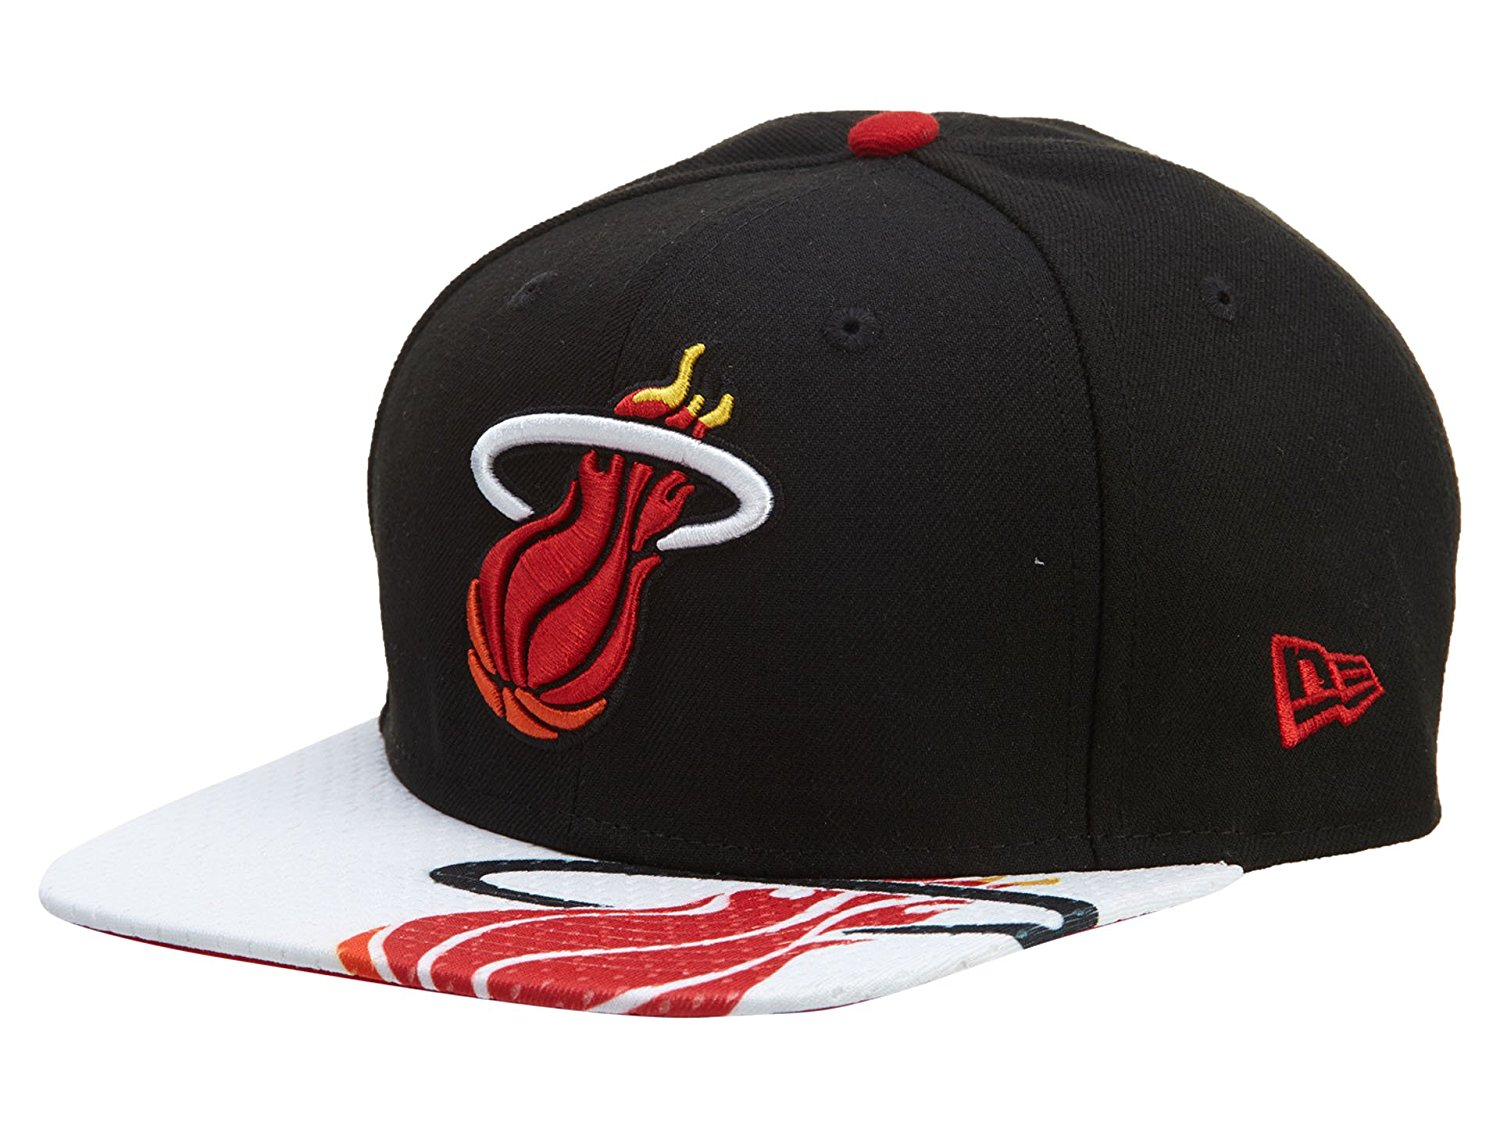 f5ac8b87372 Get Quotations · NBA New Era 9Fifty 950 Gym Class Miami Heat Snapback Hat  Cap Flat Bill Black